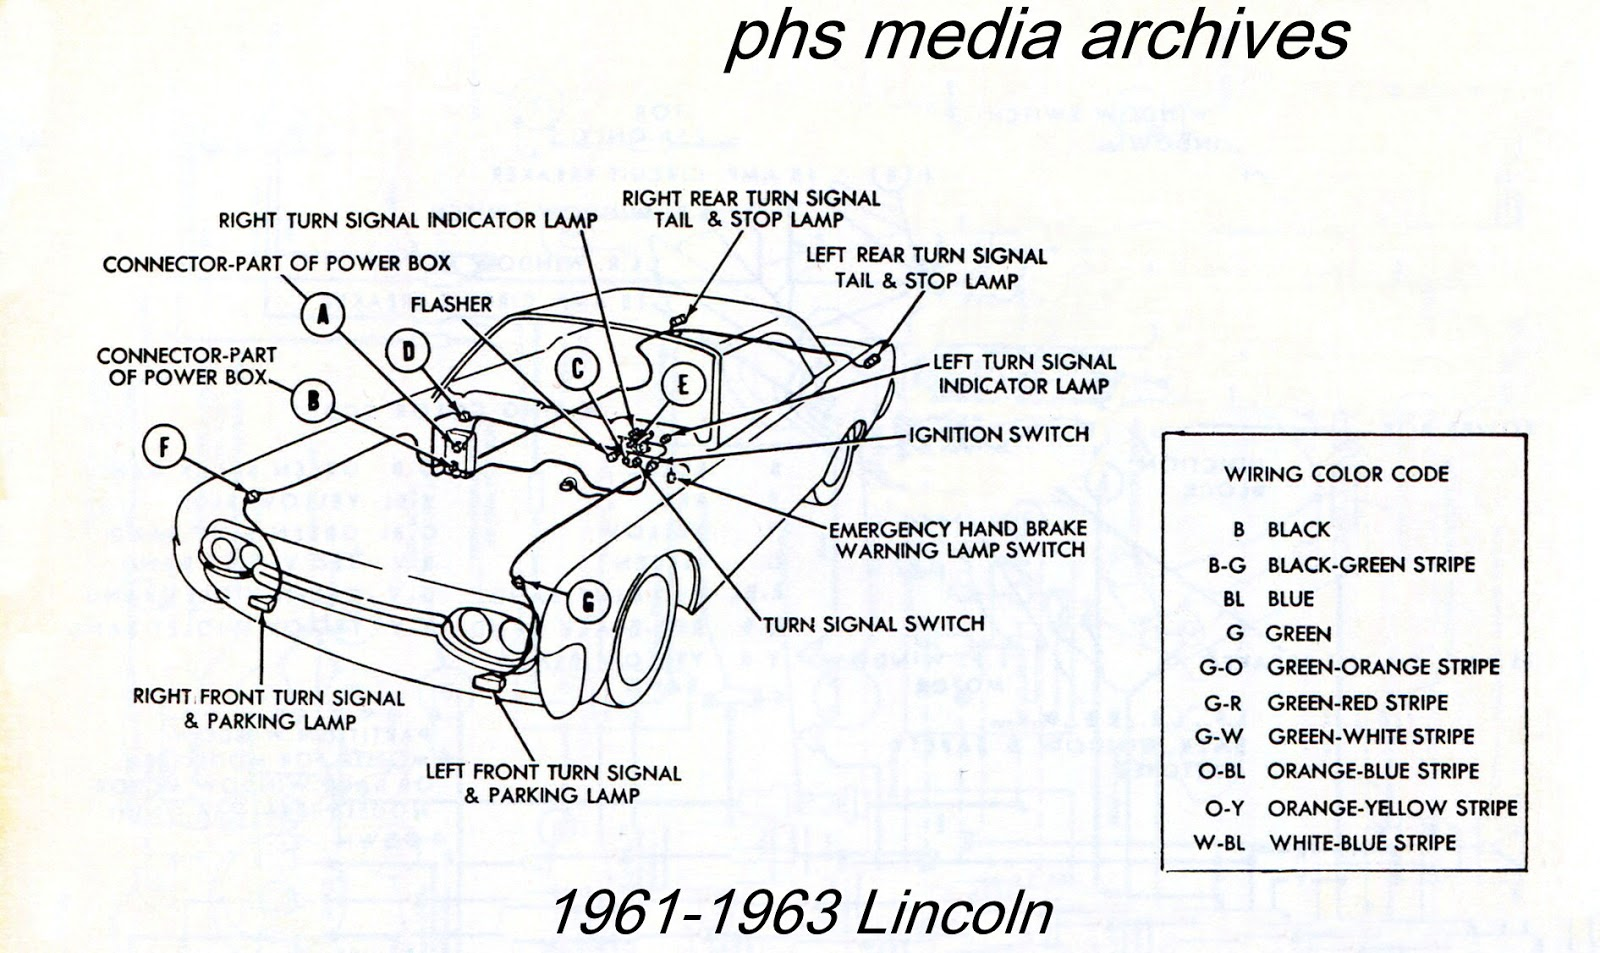 linc%2B%2Bc239 tech series 1960 1964 lincoln wiring diagrams phscollectorcarworld lincoln auto greaser wiring diagram at aneh.co